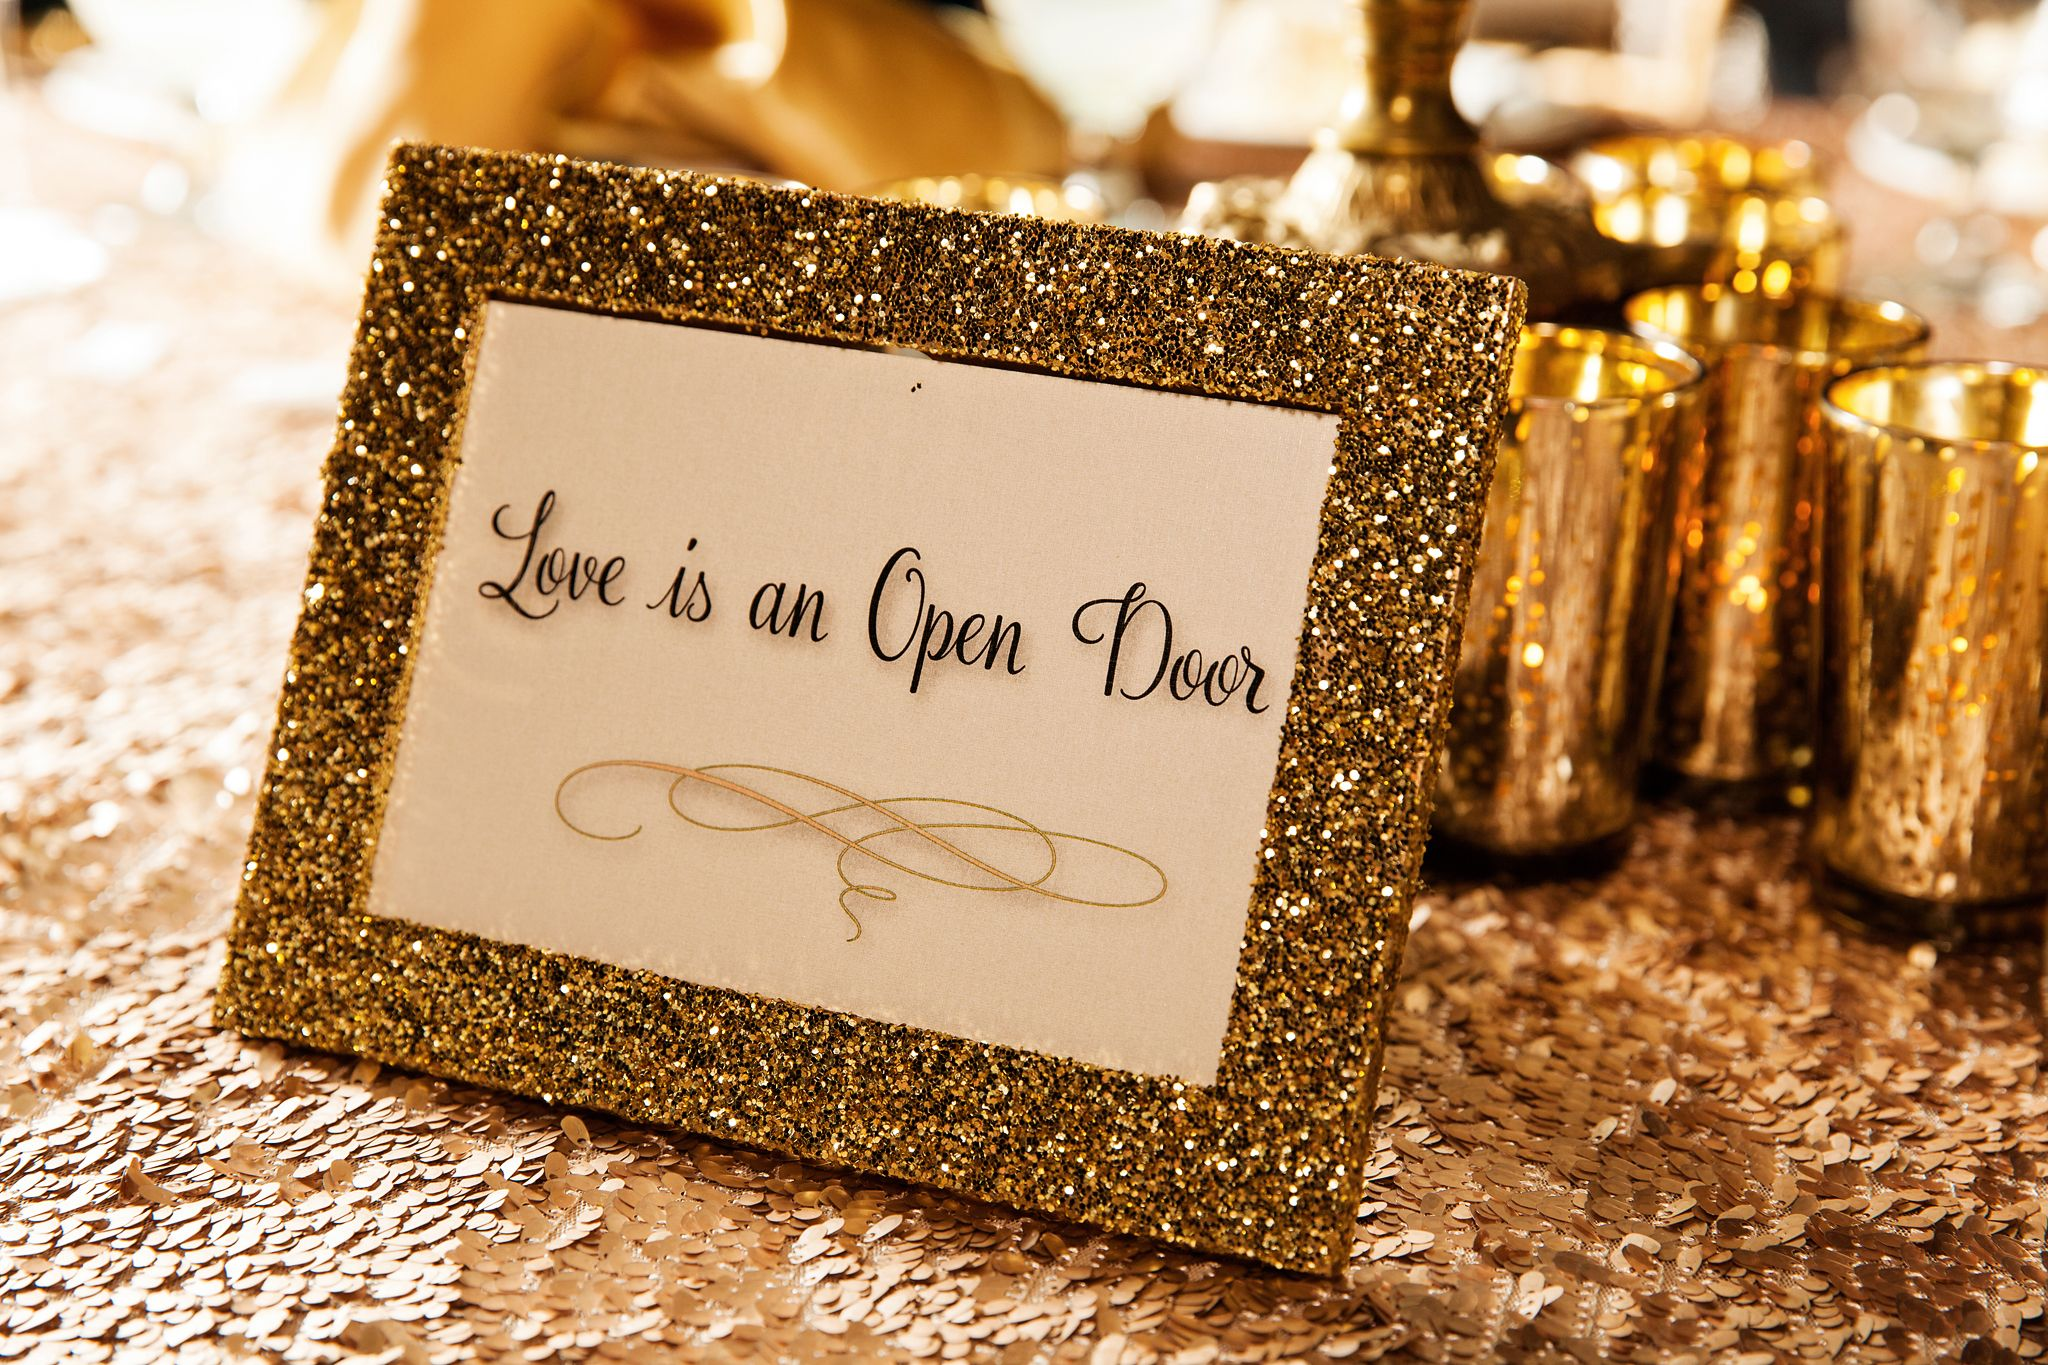 Disney Song Lyric Table Cards At Hailey And Bens Fairy Tale Wedding Reception